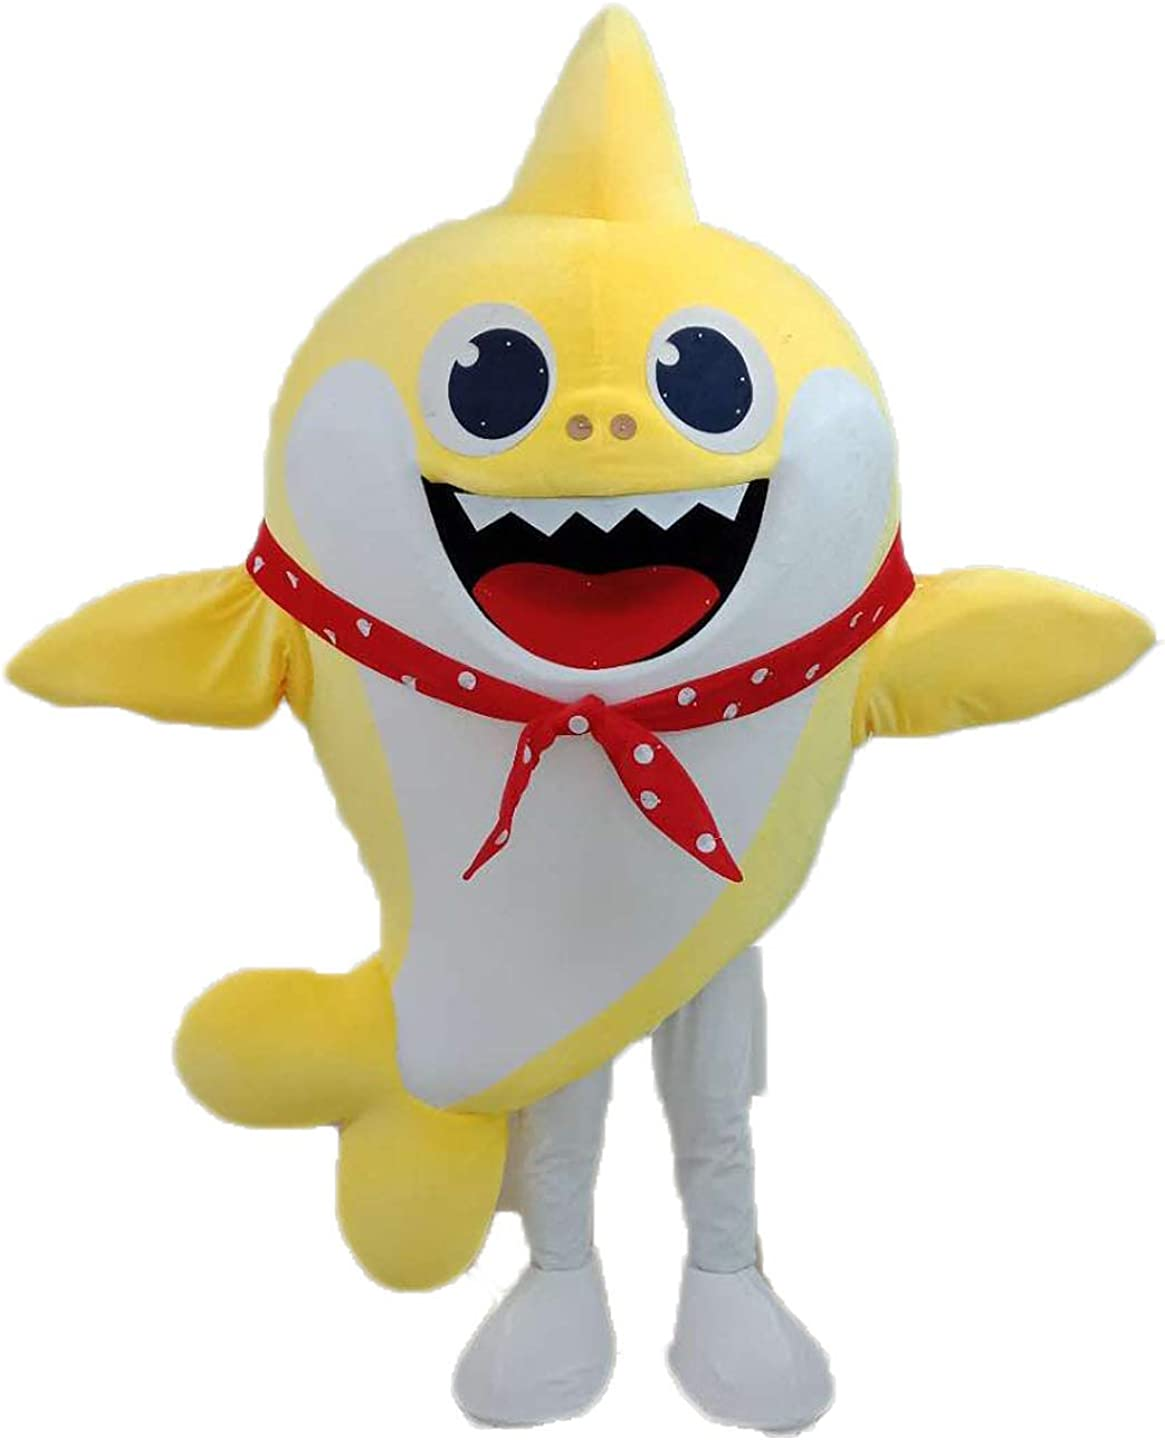 Funny Adult Wear Baby Shark Mascot Costume for Kids Birthday Party Cartoon Character Mascots